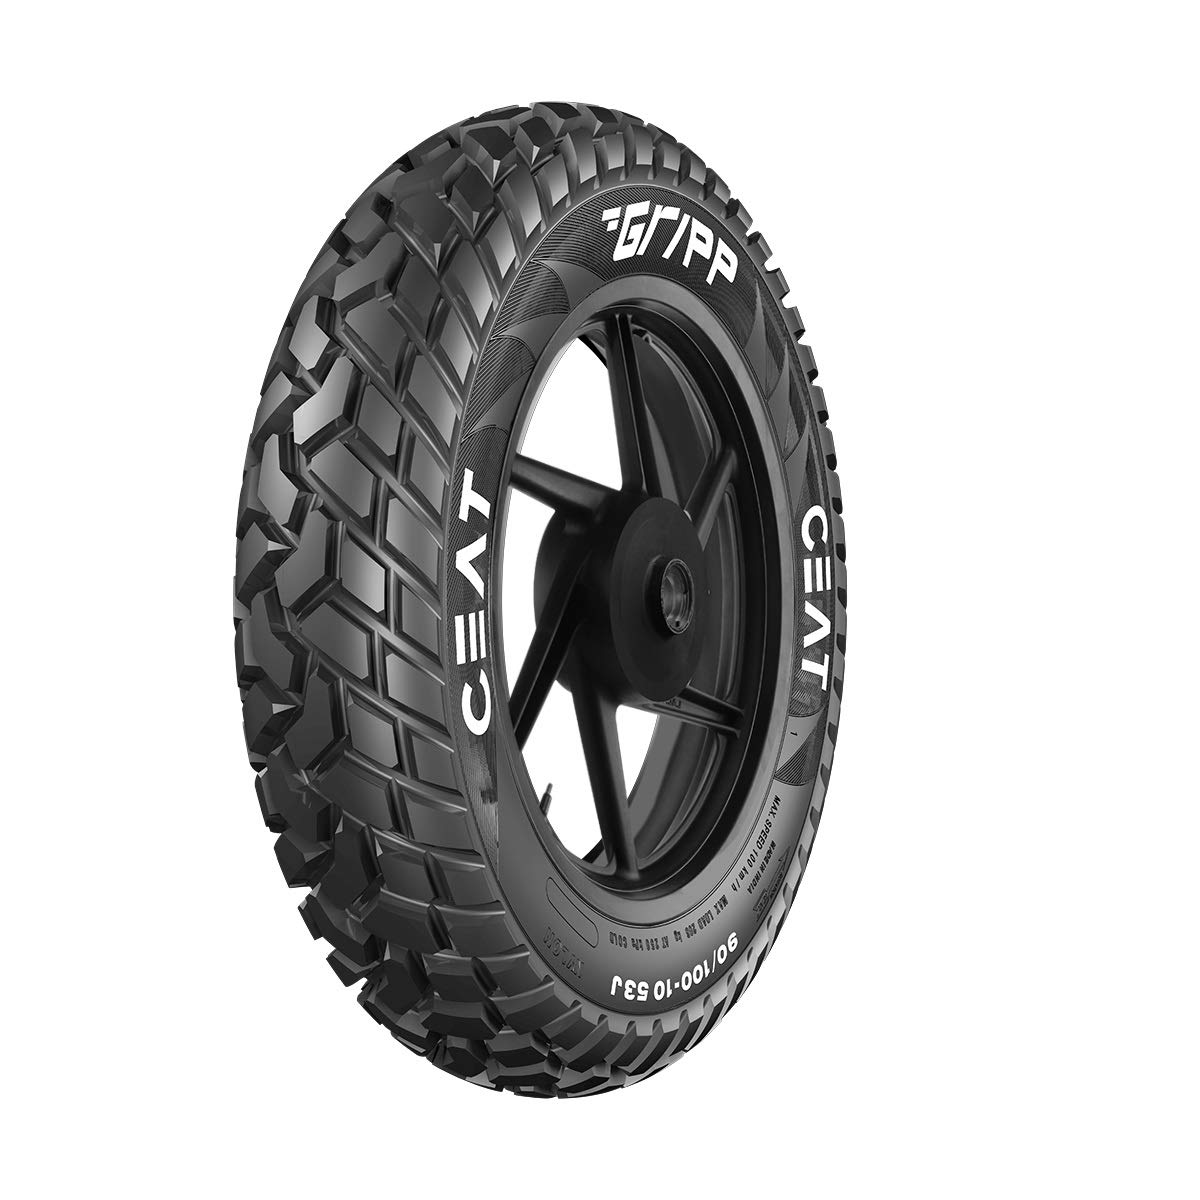 Best Ceat Gripp 90/100 – 10 53J Tube-Type Scooter Rear Tyre For  Hero Maestro, Hero Pleasure, Honda Activa in India 2021